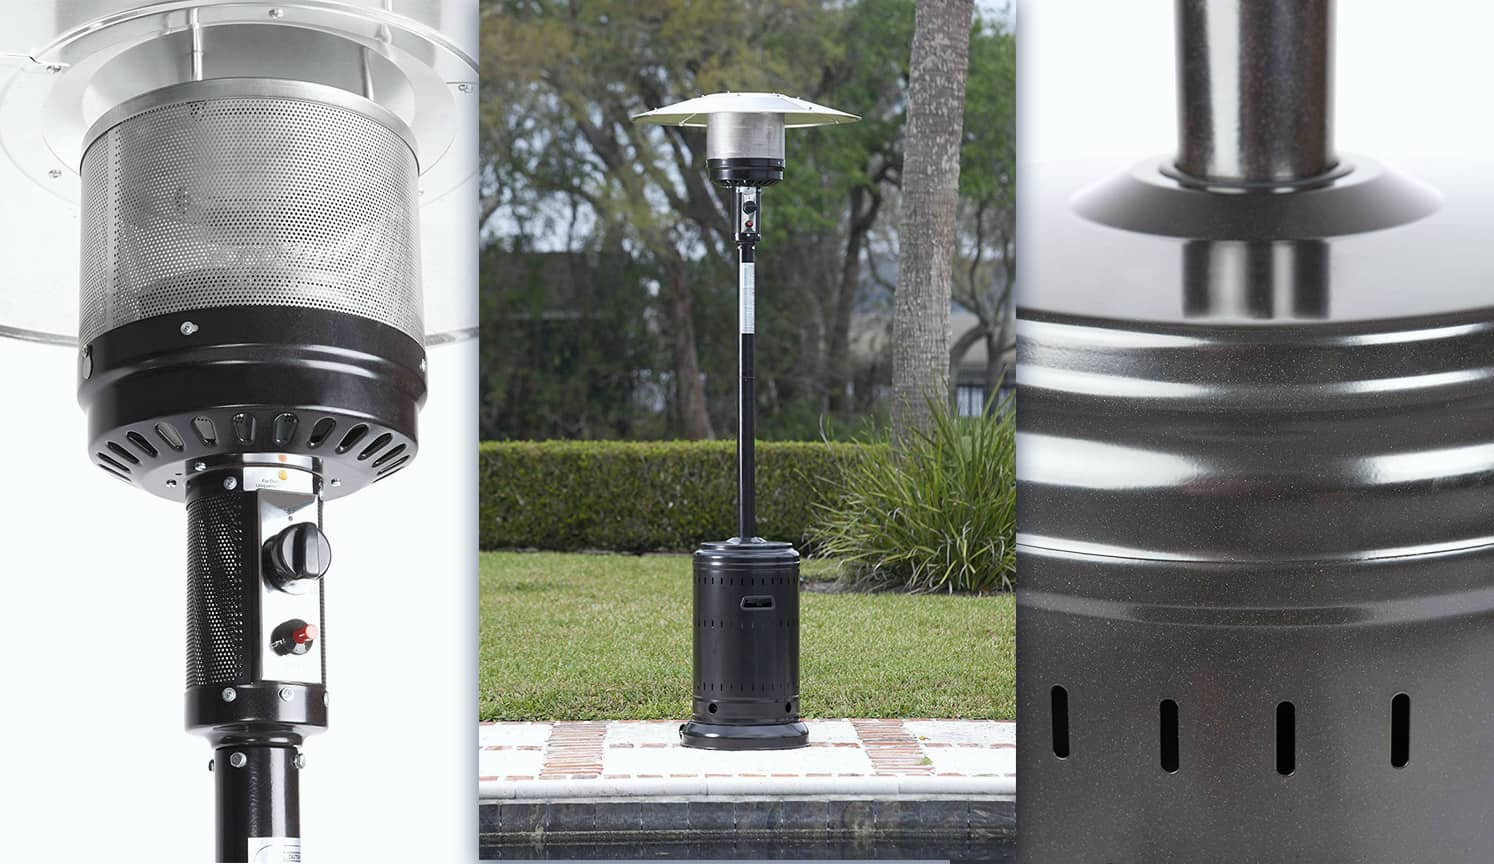 Commercial Patio Heater as the second related product of Propane Patio Heater